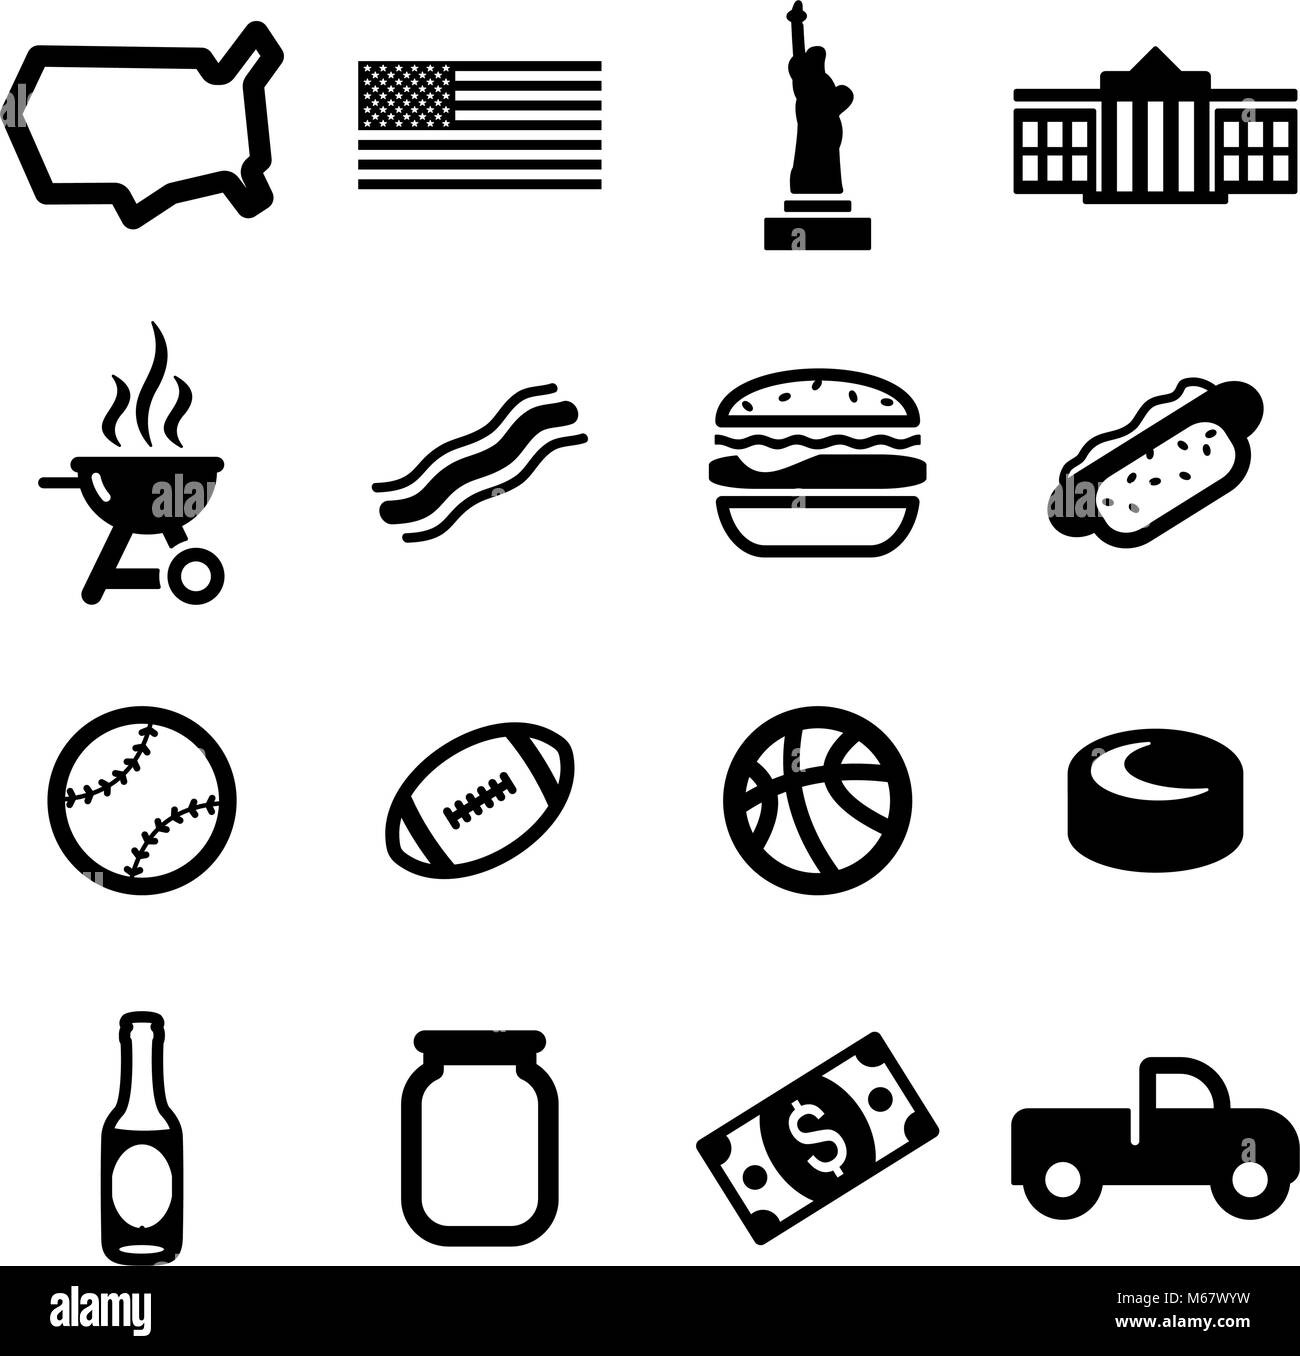 USA Icons - Stock Image